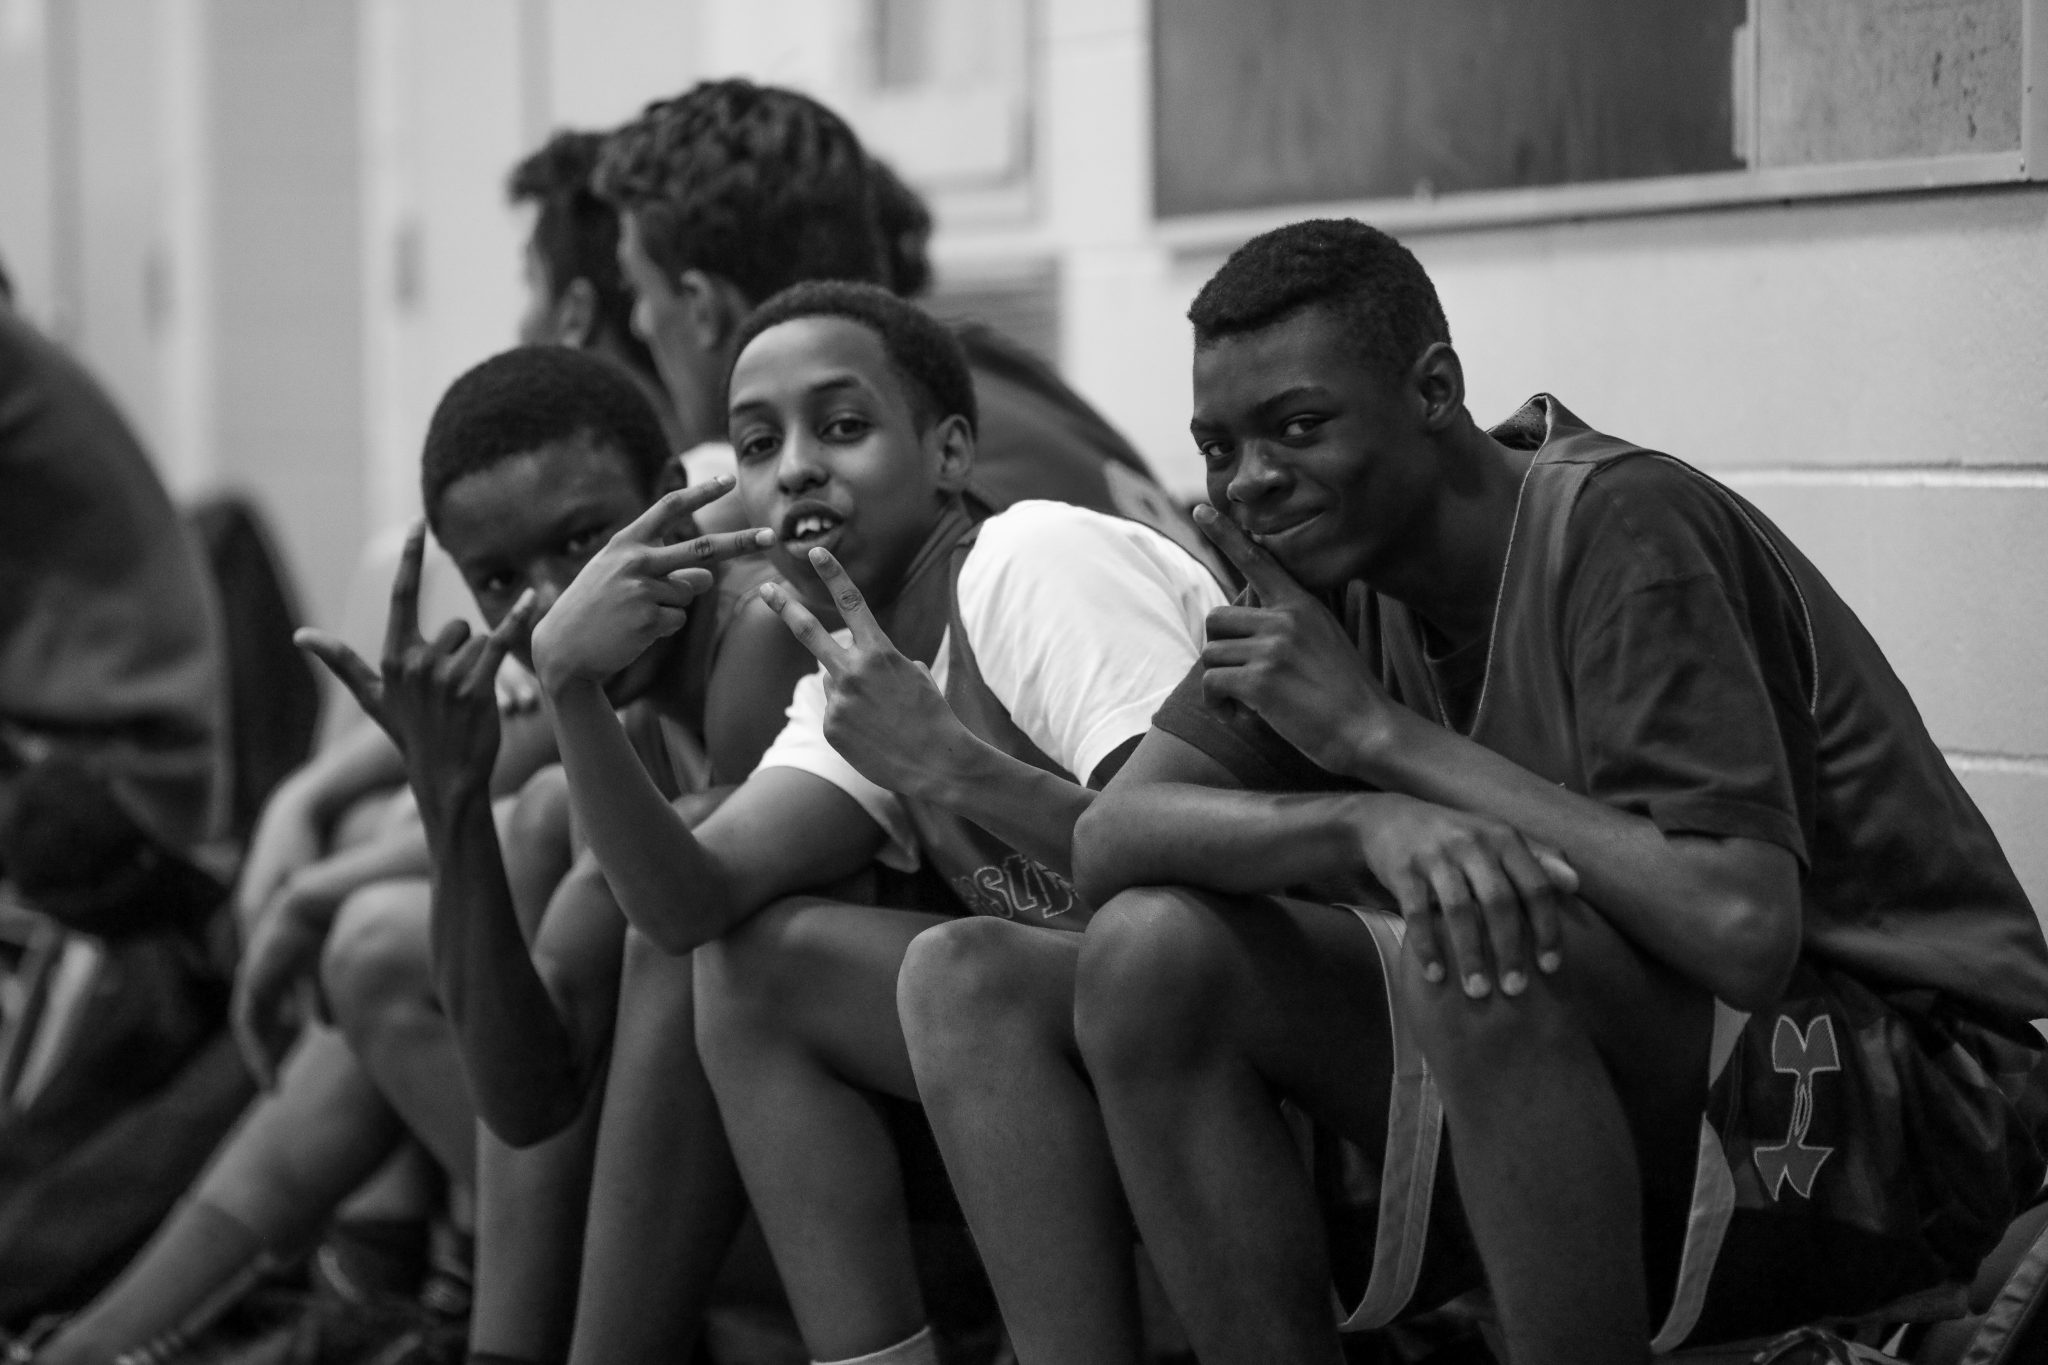 East York Basketball. Mohammed, Haron and Jeff at the end of a game. Shot by Luke Galati